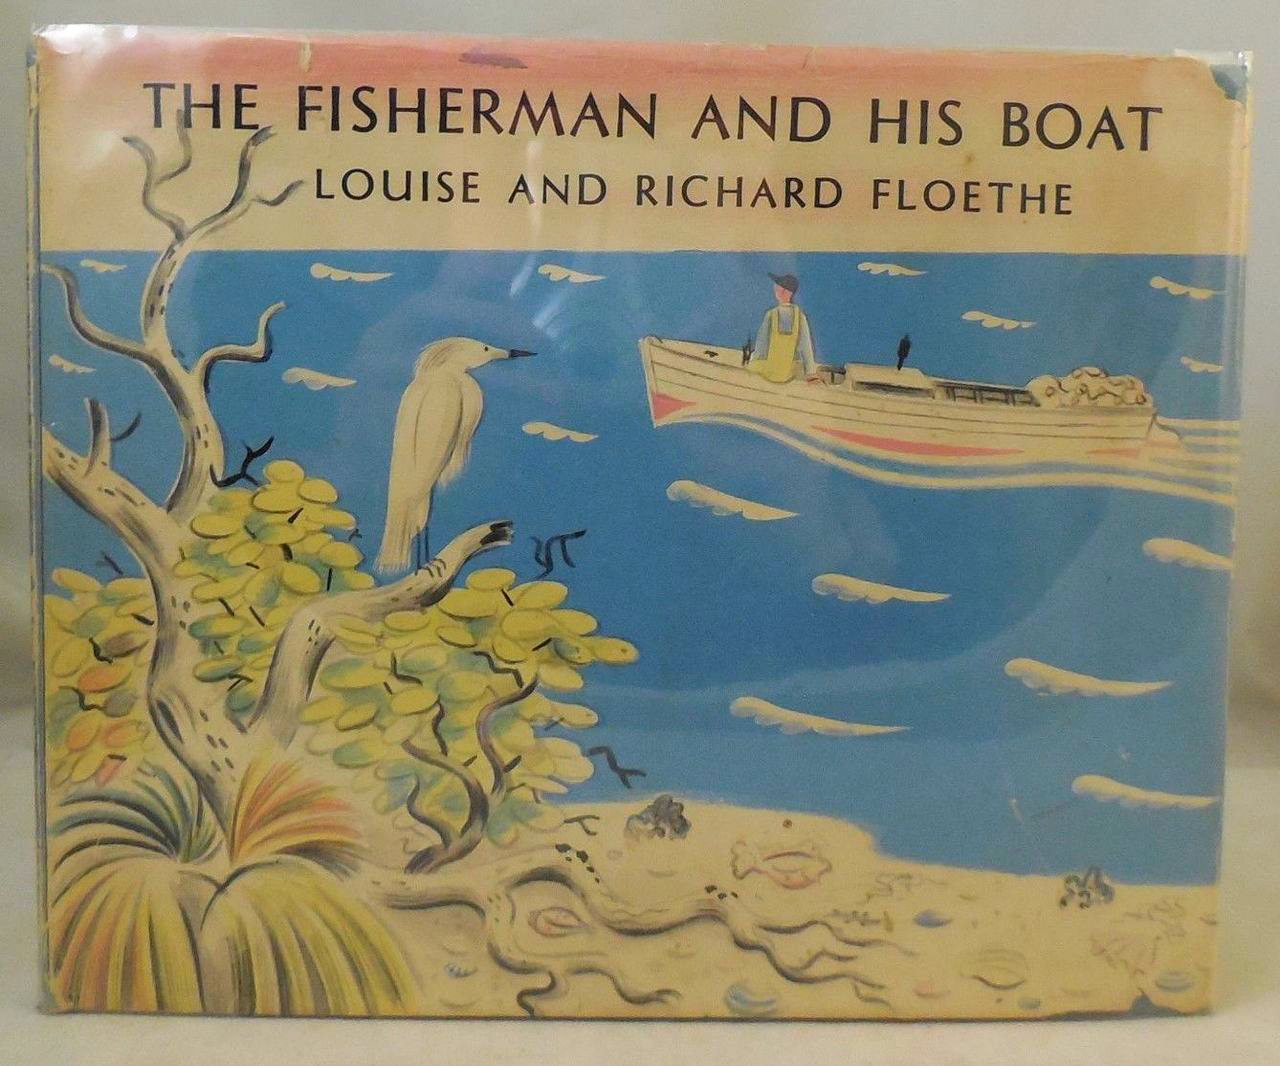 THE FISHERMAN AND HIS BOAT, by Louise & Richard Floethe - 1961 [1st Ed]